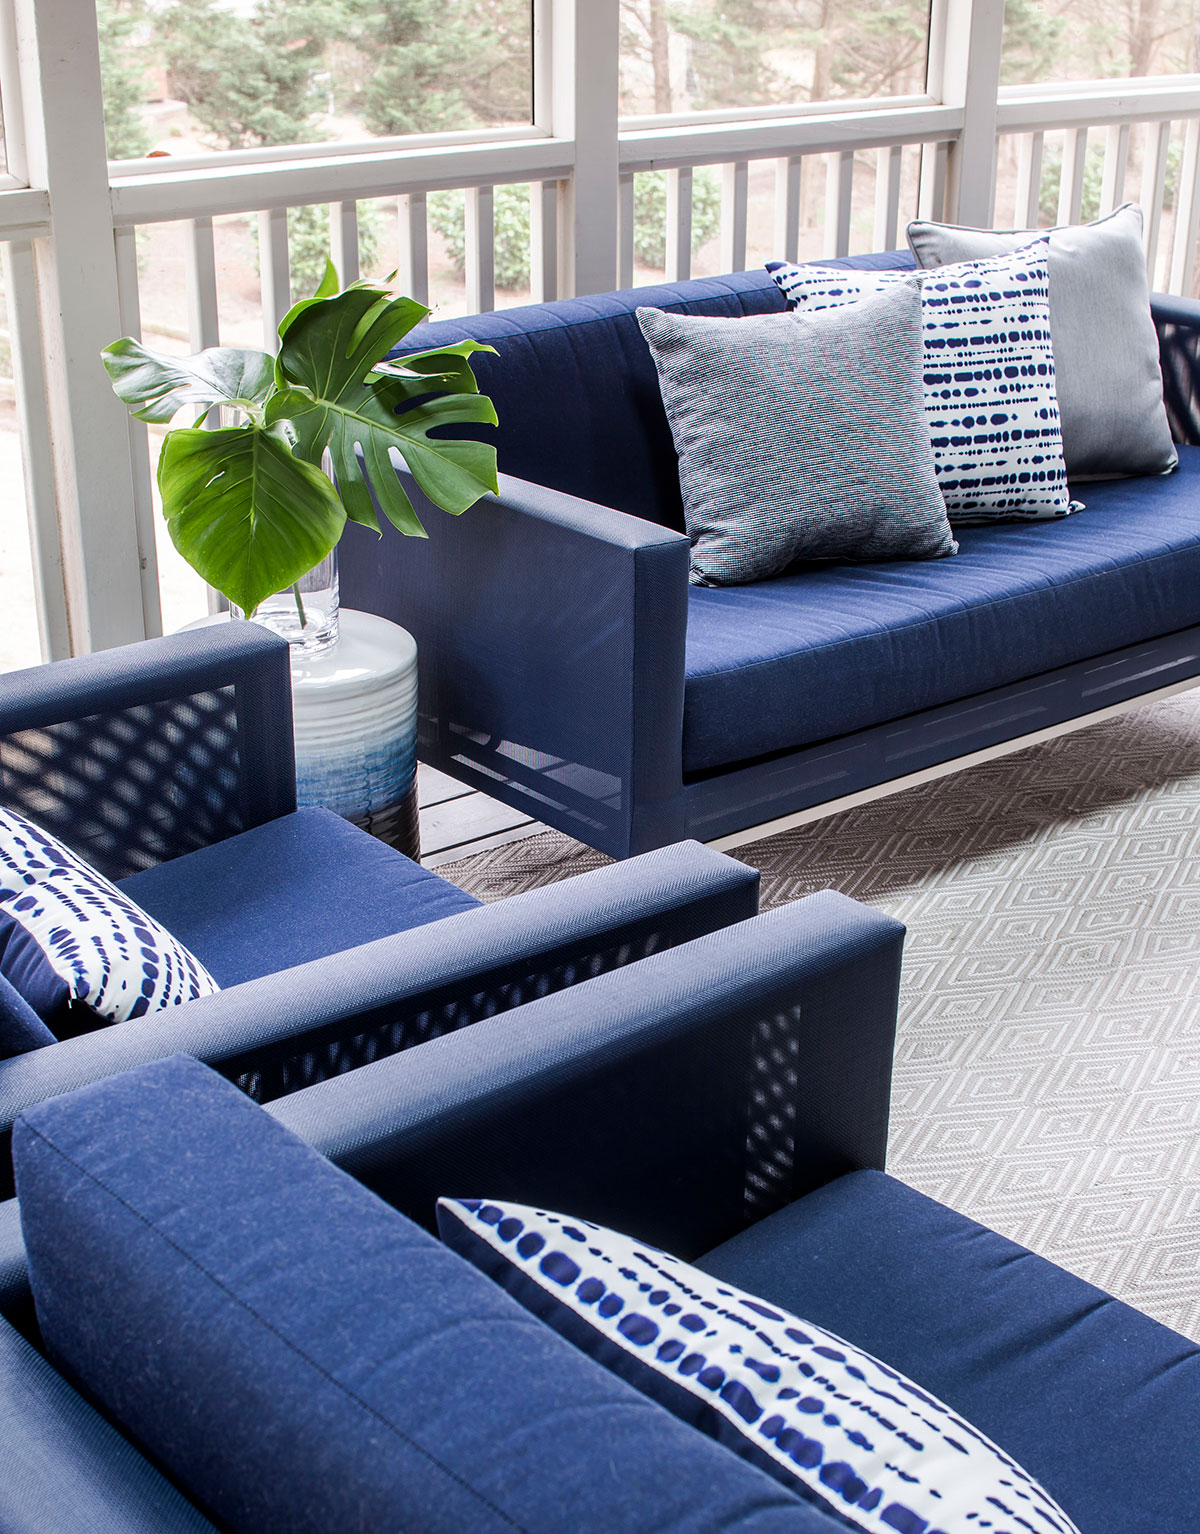 Screened-in porch with contemporary navy outdoor furniture